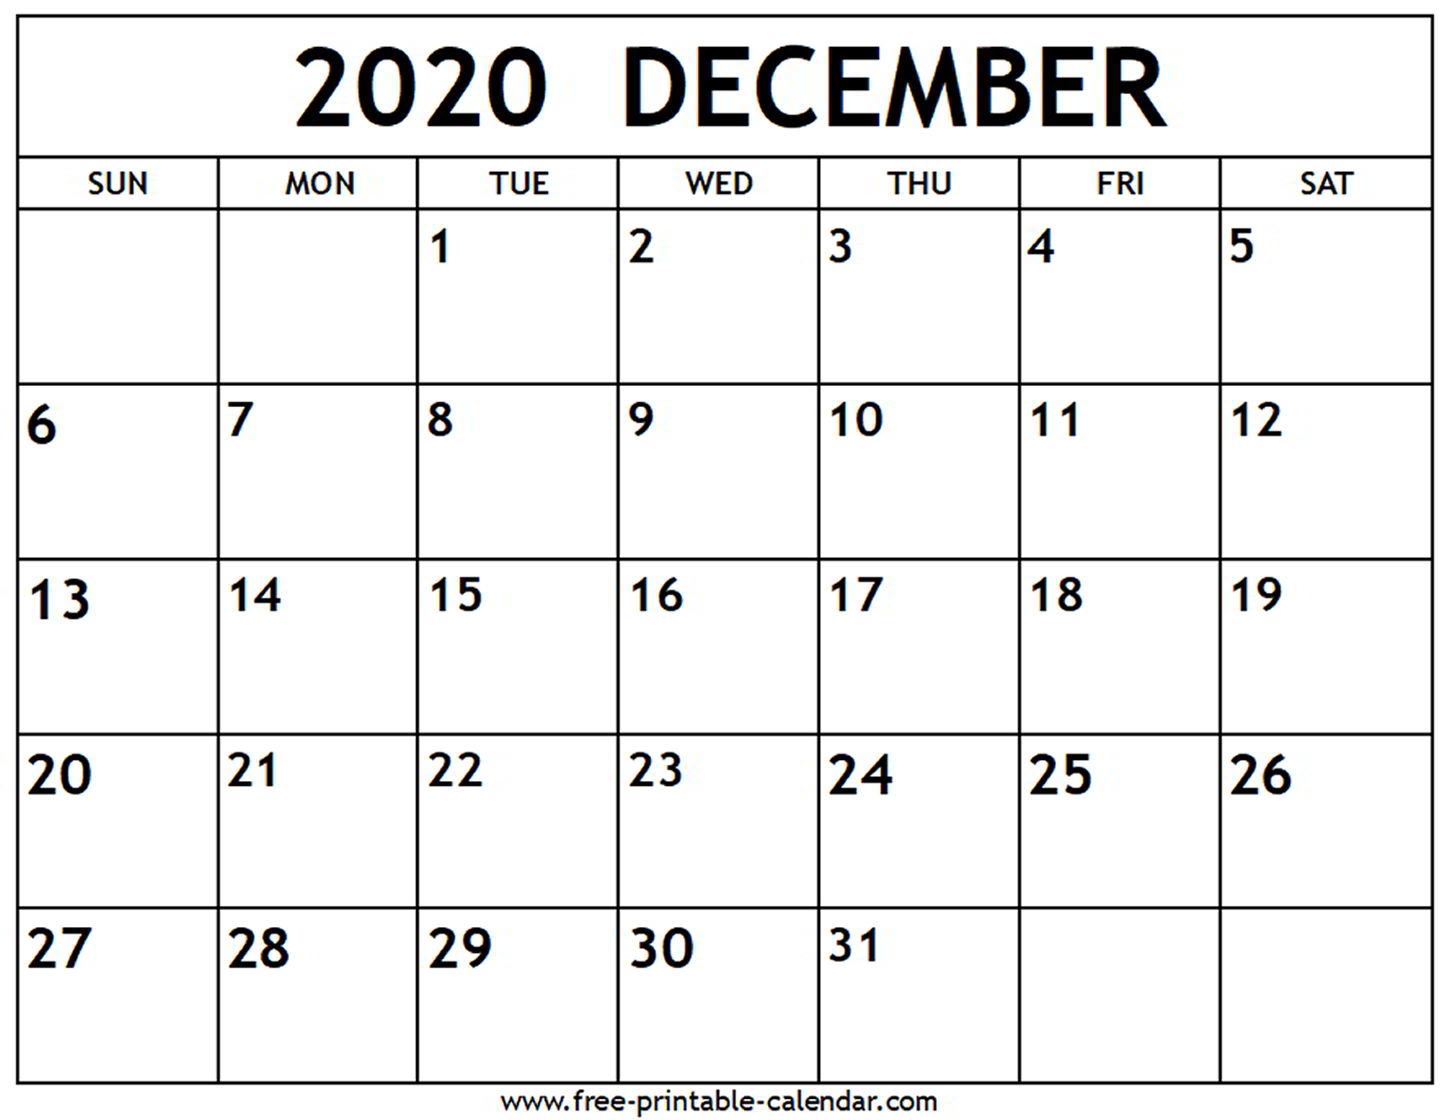 December 2020 Calendar  Freeprintablecalendar intended for Calander For December 2020